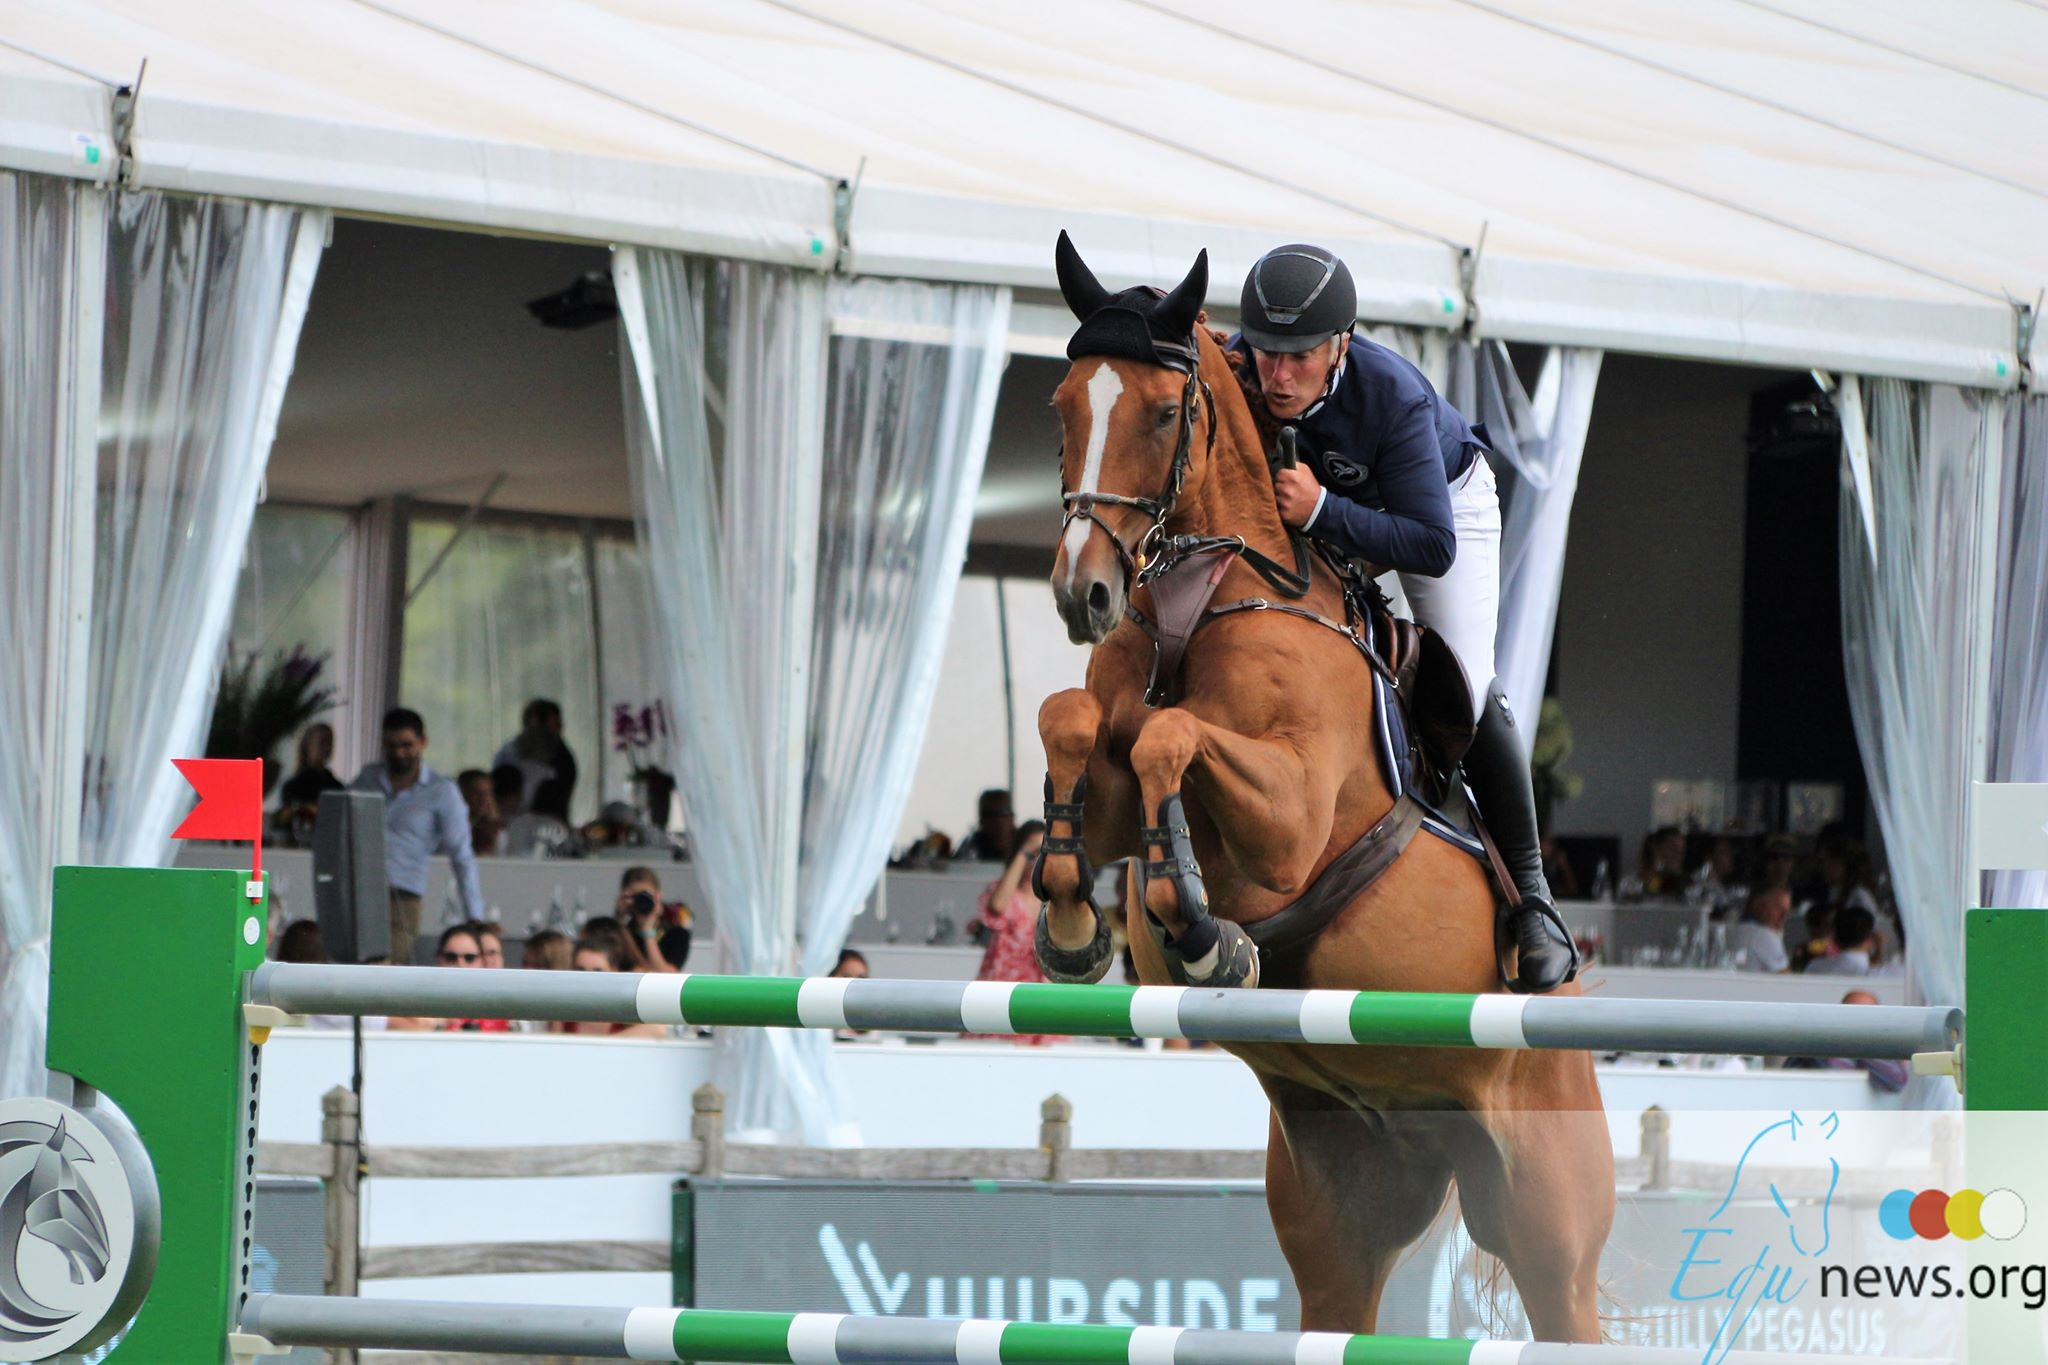 Bosty remporte le GP du CSI 4* de Valence